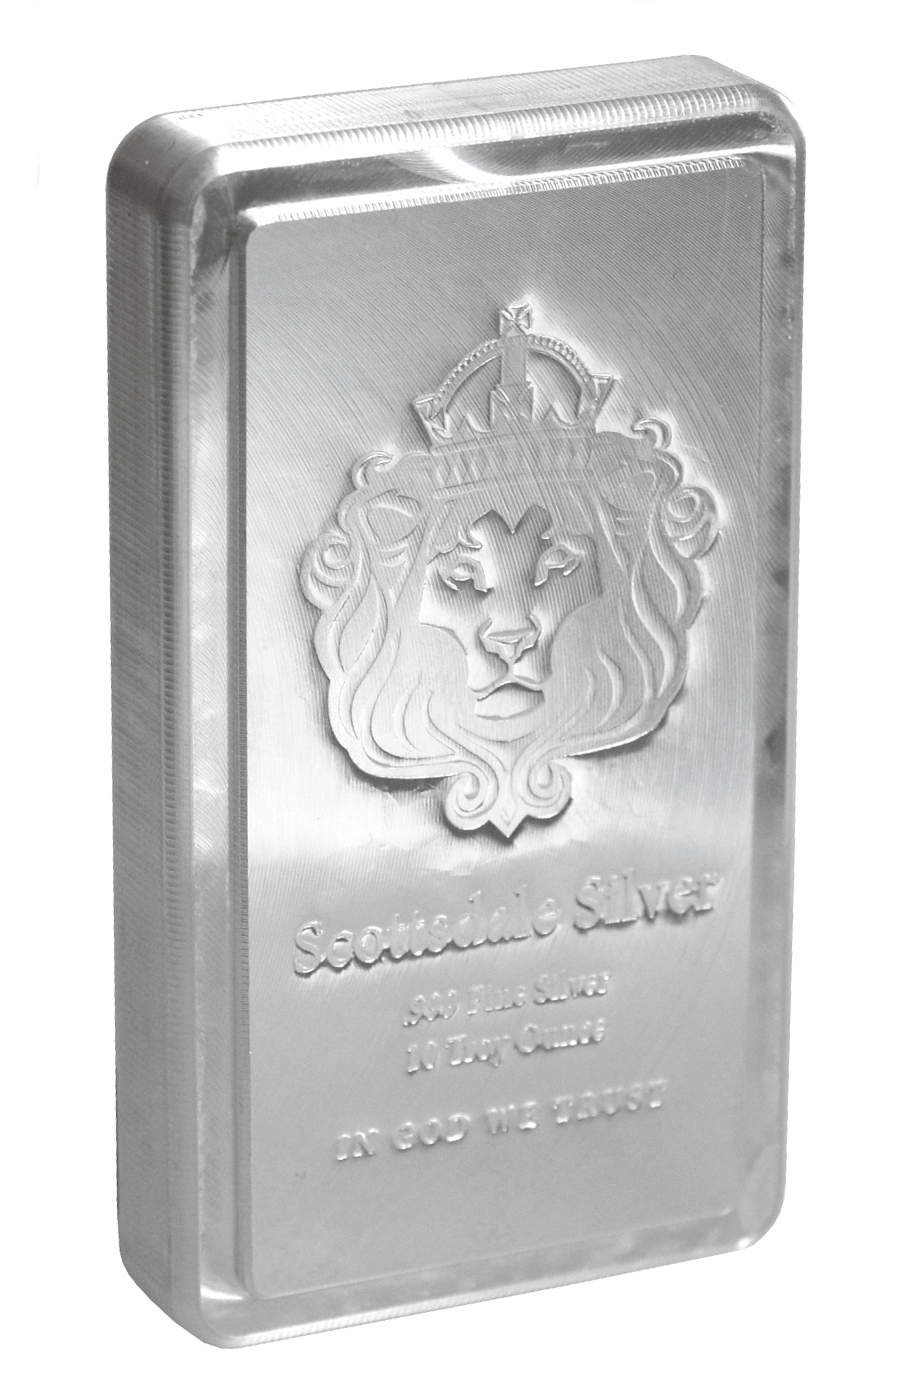 Buy Scottsdale 10oz Silver Stacker Bar Bullionbypost